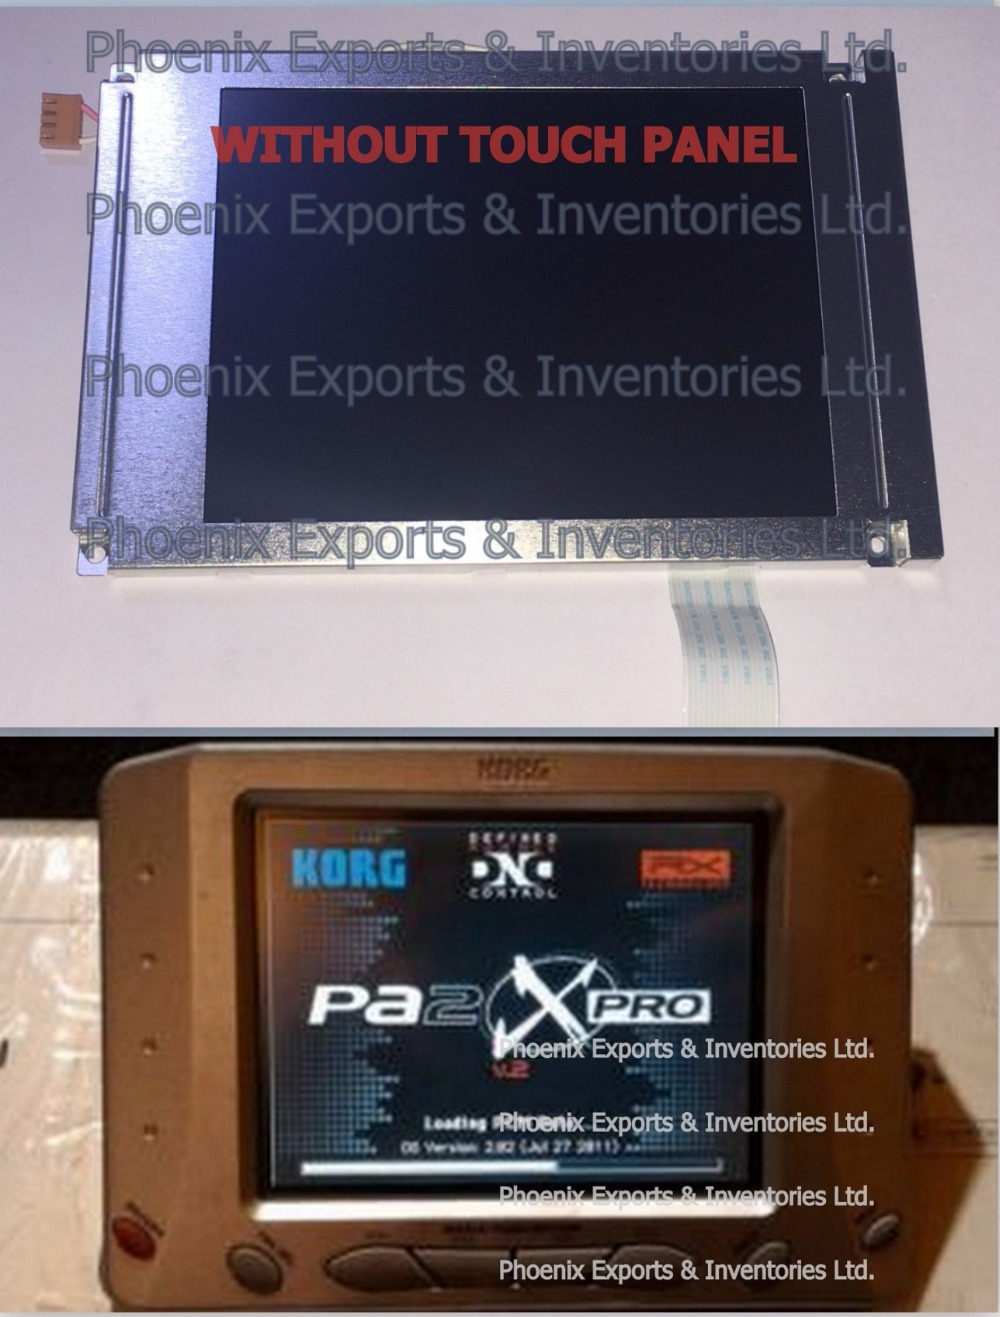 Brand New Korg Display LCD Screen for Korg PA2x Pro 5.7 LCD PA2XPRO Display Screen without Touch Screen